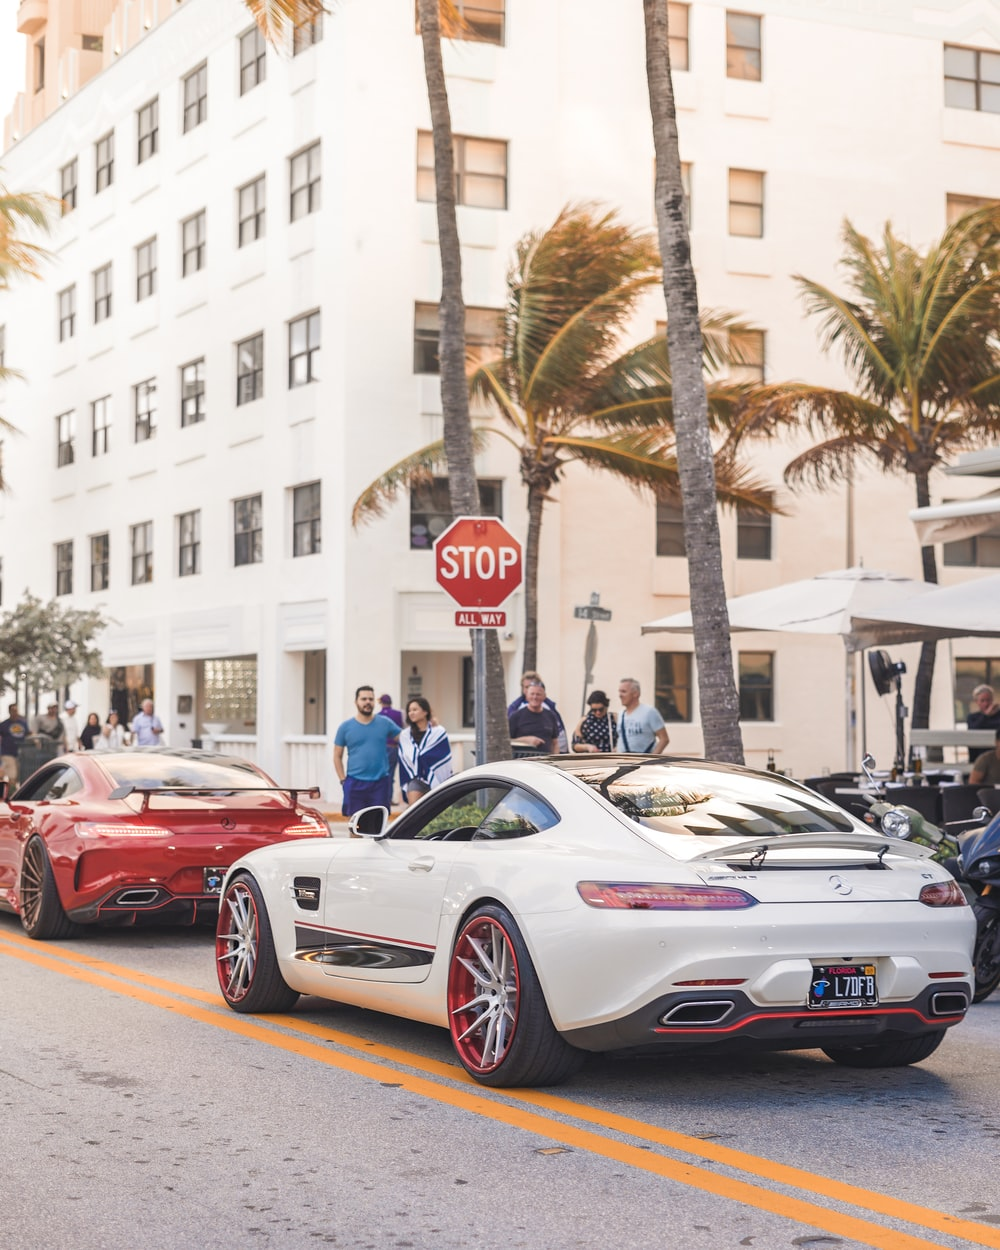 red and white porsche 911 parked on street during daytime